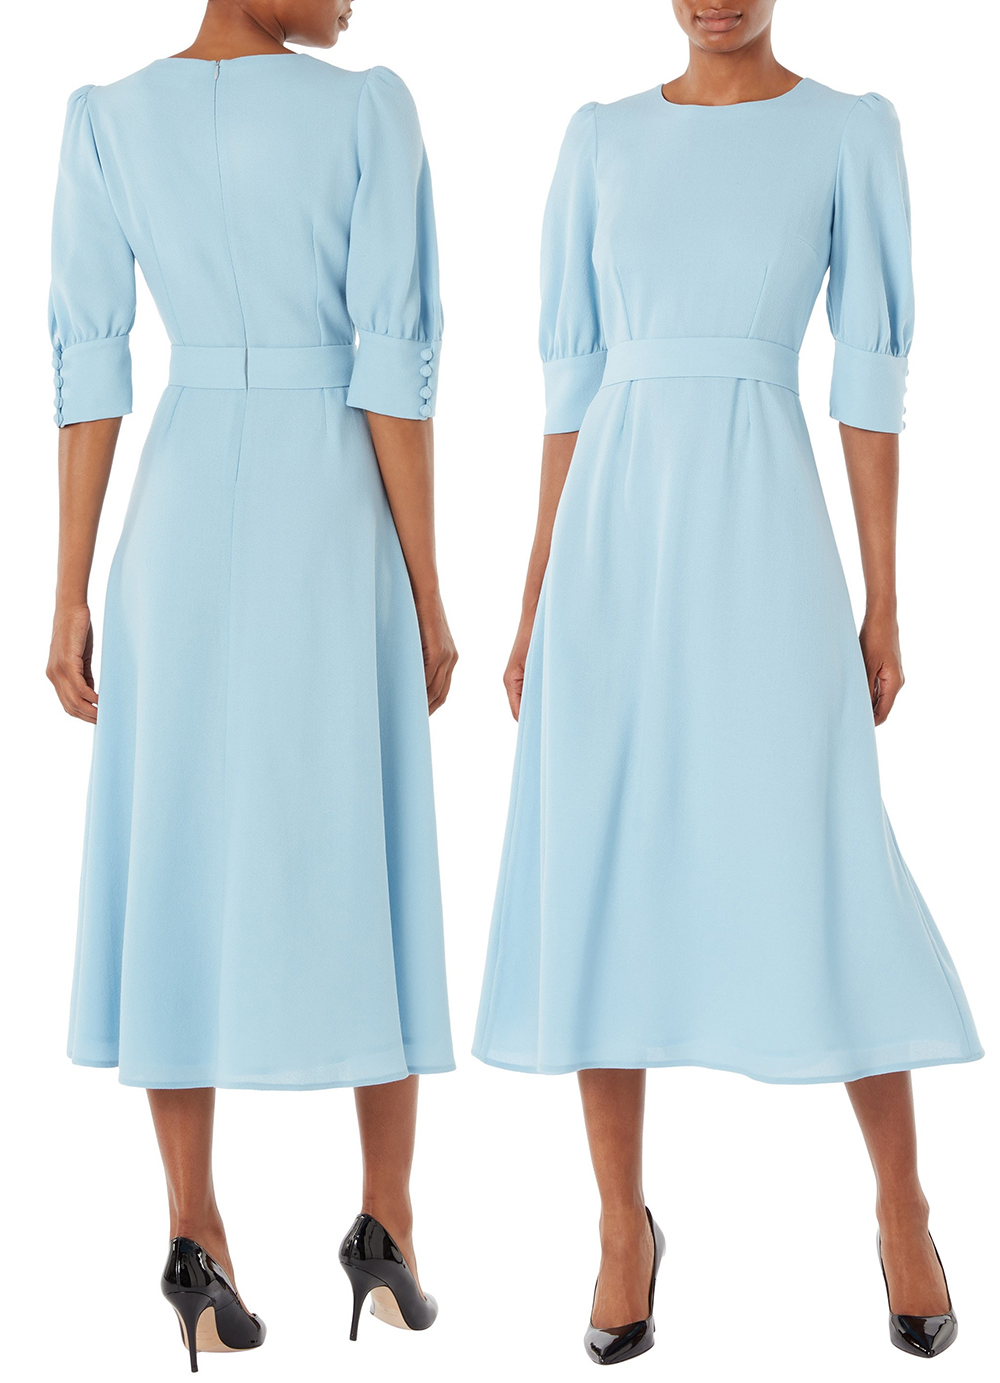 Powder Blue Mother of the Bride Dress 2021. Ice Blue Mother of the Bride Dress 2021. Pale Blue Mother of the Bride Dresses 2021. Summer Mother of the Bride Dresses 2021. Outfits for Mother of the Bride 2021. Goat Dress as worn by Kate mIDDLETON. What to wear for a Summer wedding 2021. Summer Mother of the Bride outfits 2021. Goat Powder Blue Dress.